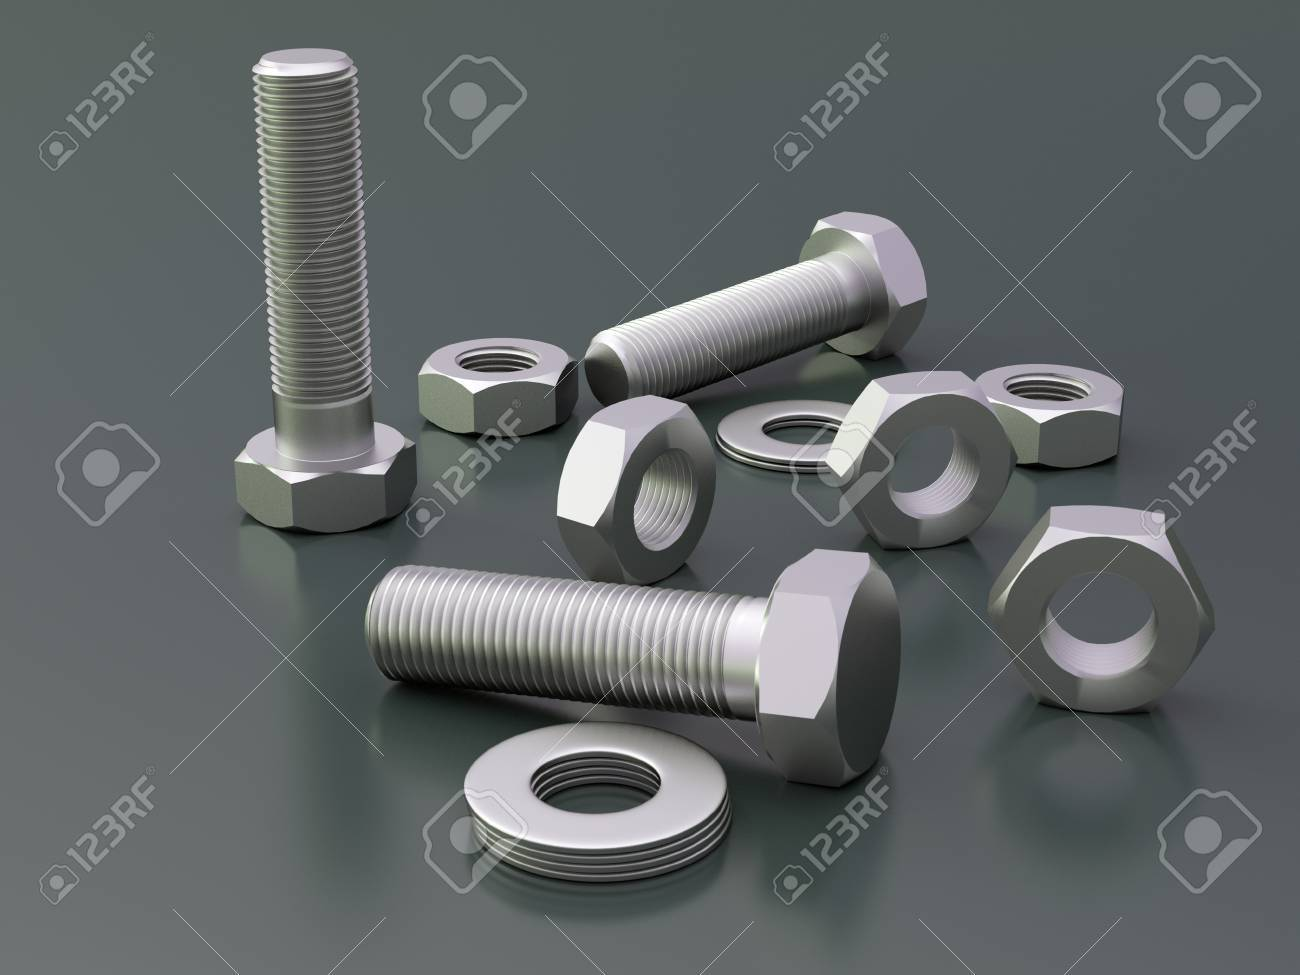 Dark background with bolts and nuts - 35796459